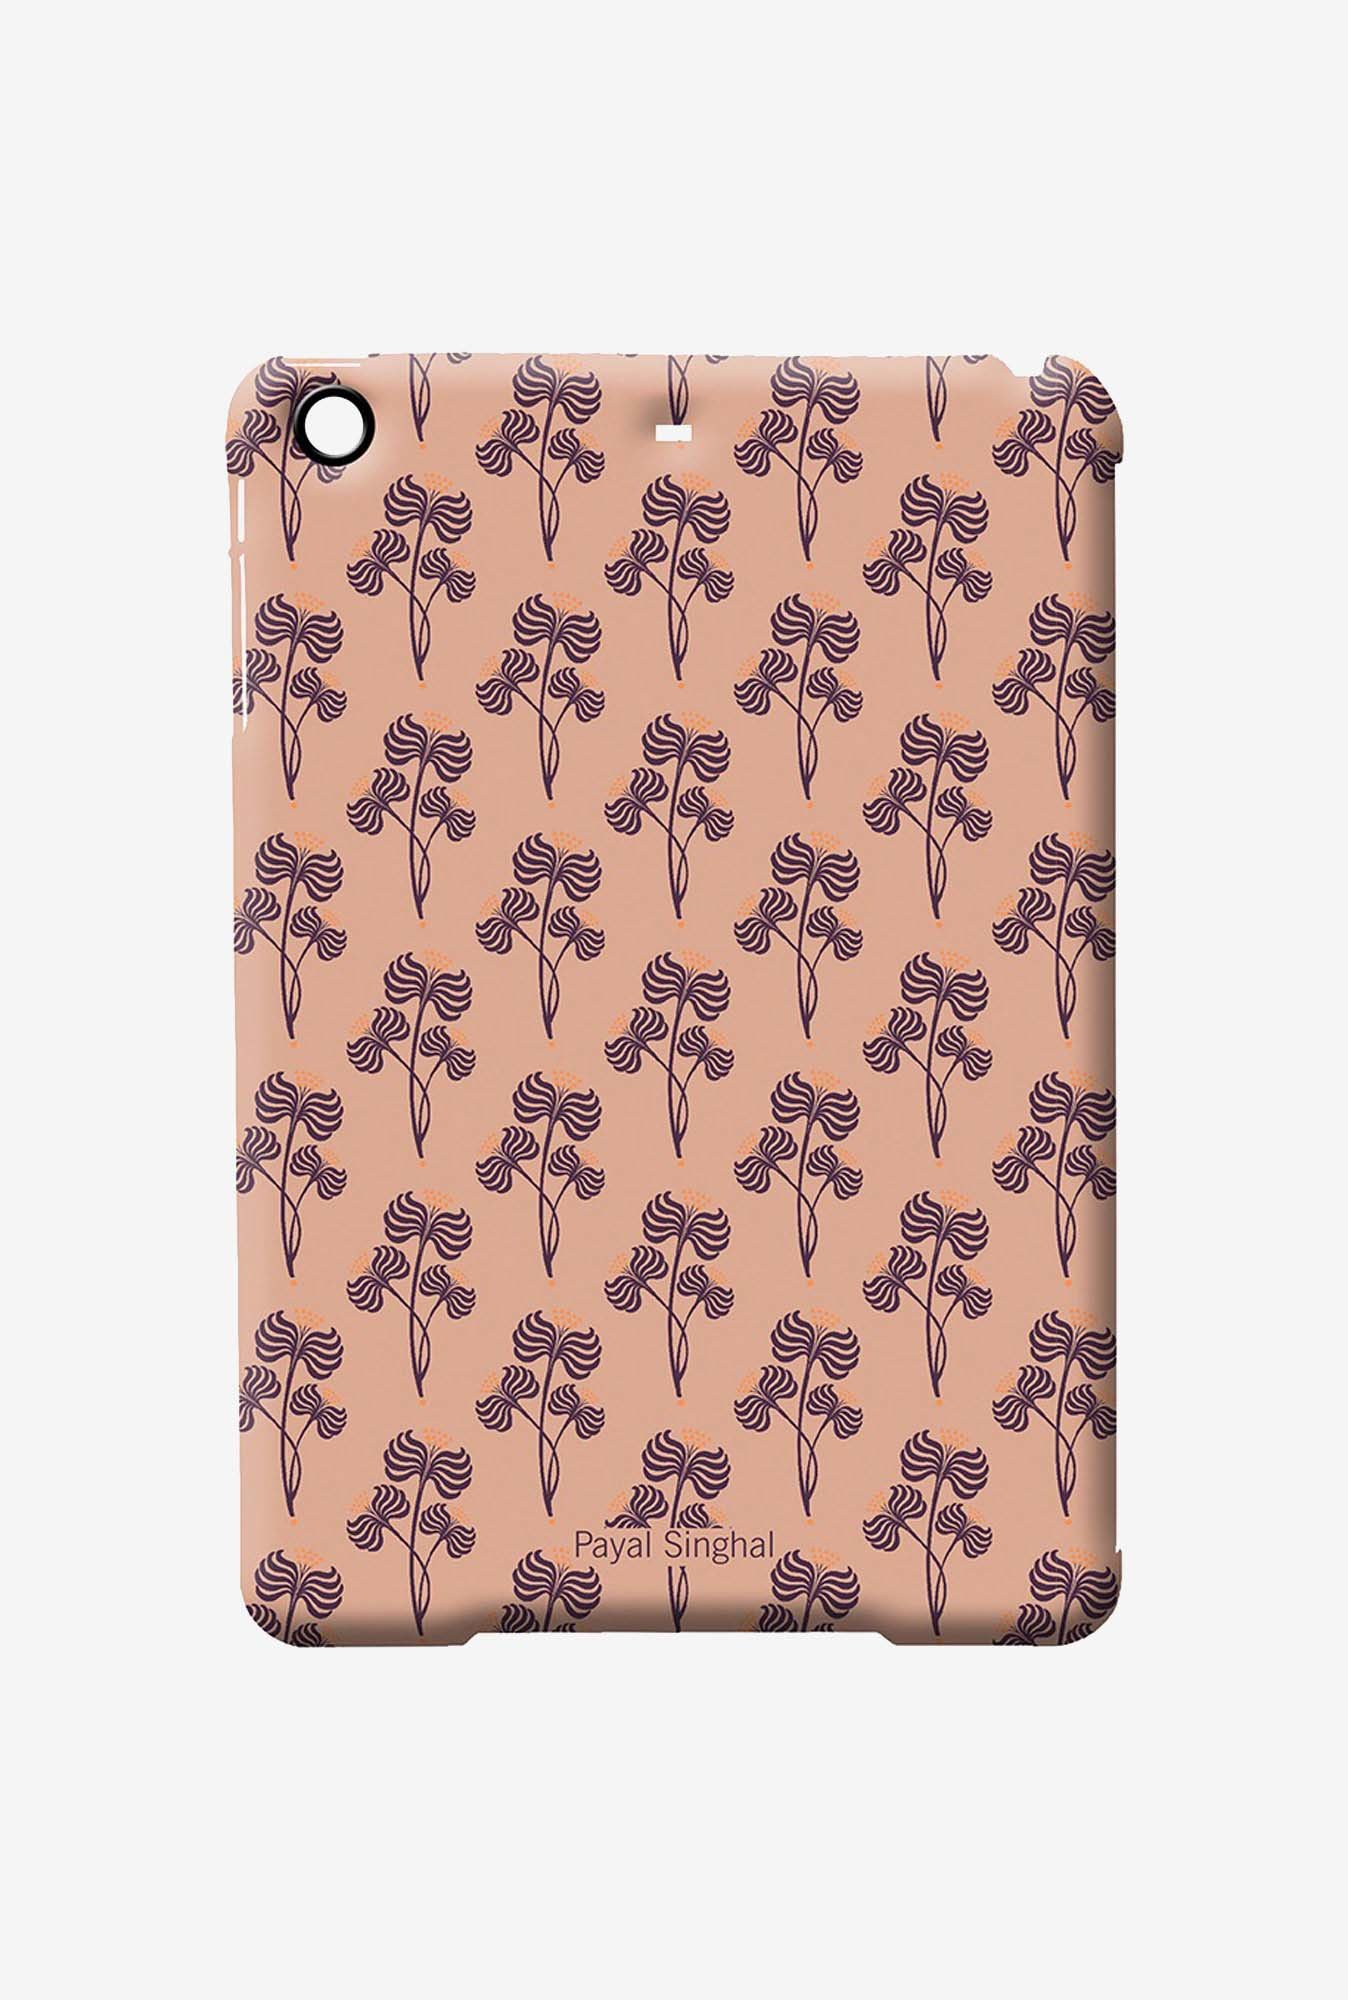 Macmerise Payal Singhal Art Nouveau Pro Case for iPad 2/3/4